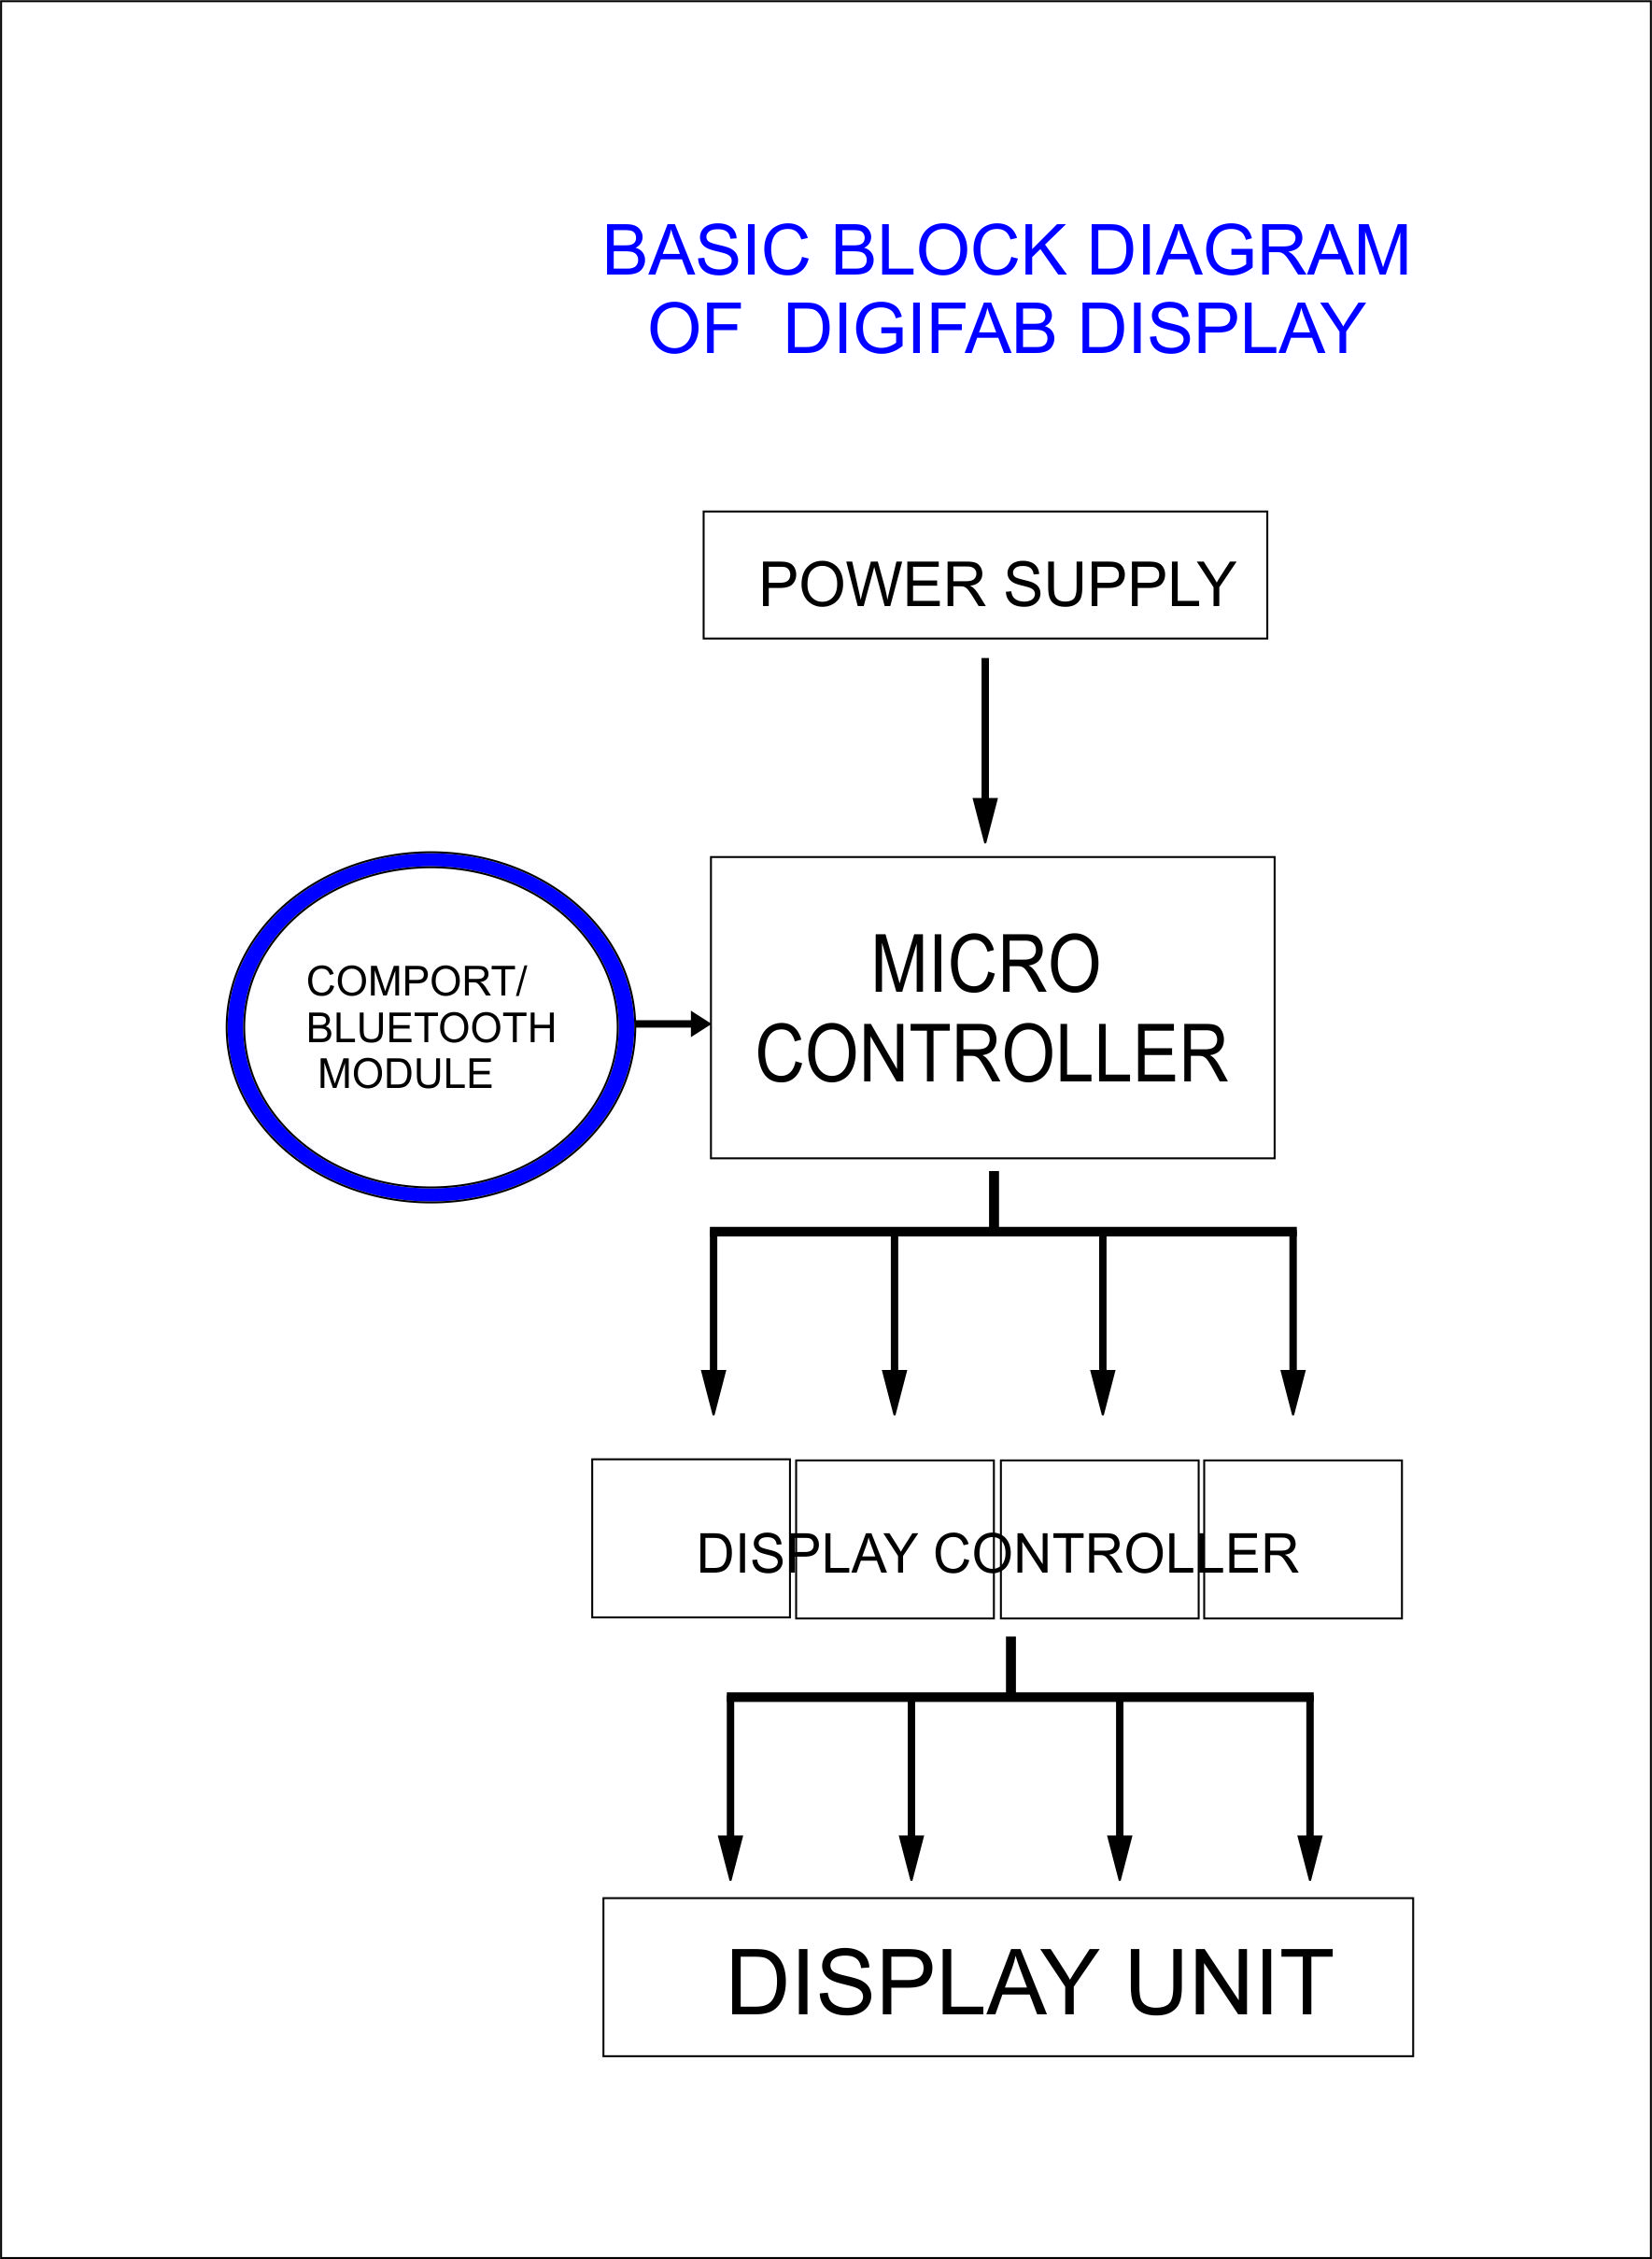 Final Project Filecapacitor Schematicsvg Wikimedia Commons A Basic Sketch And Block Diagram Drawn At The First Week